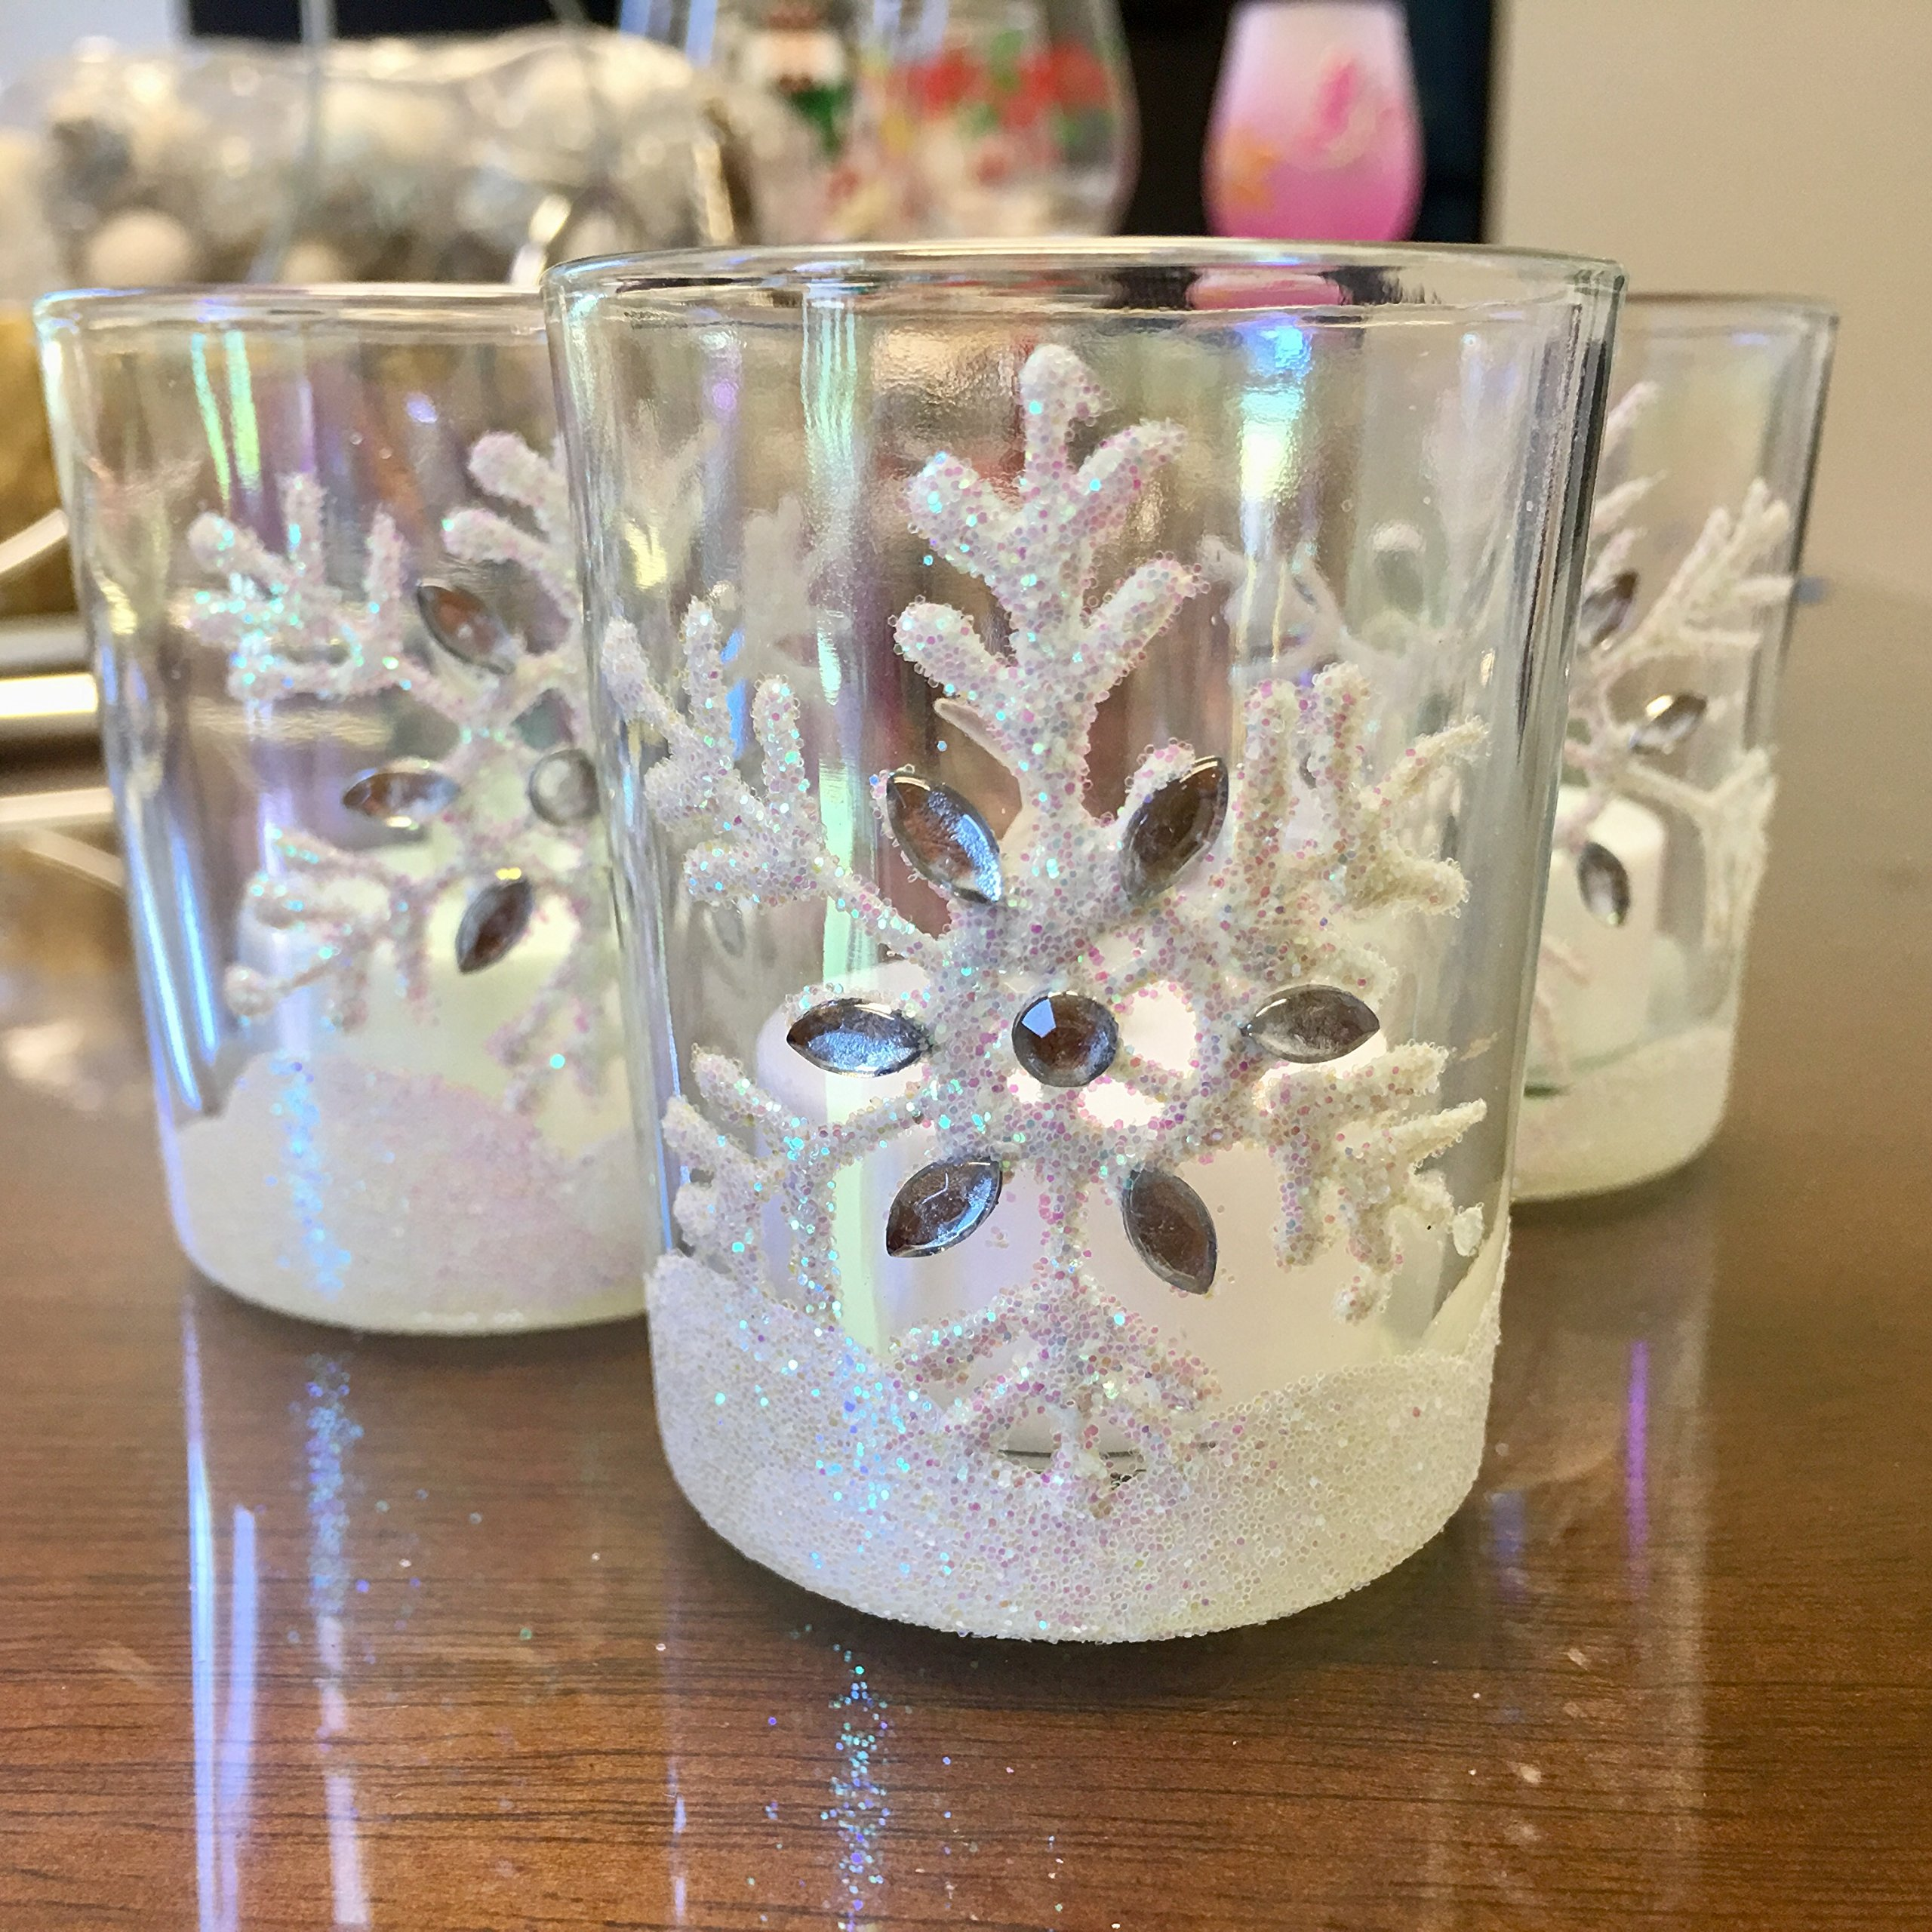 Banberry Designs Snowflake Candles – Set of 3 Glass Votive Candleholders with White Glittered Snowflakes - Flameless Flickering LED Tealights Included – Metallic Rainbow Finish – Aurora Borealis